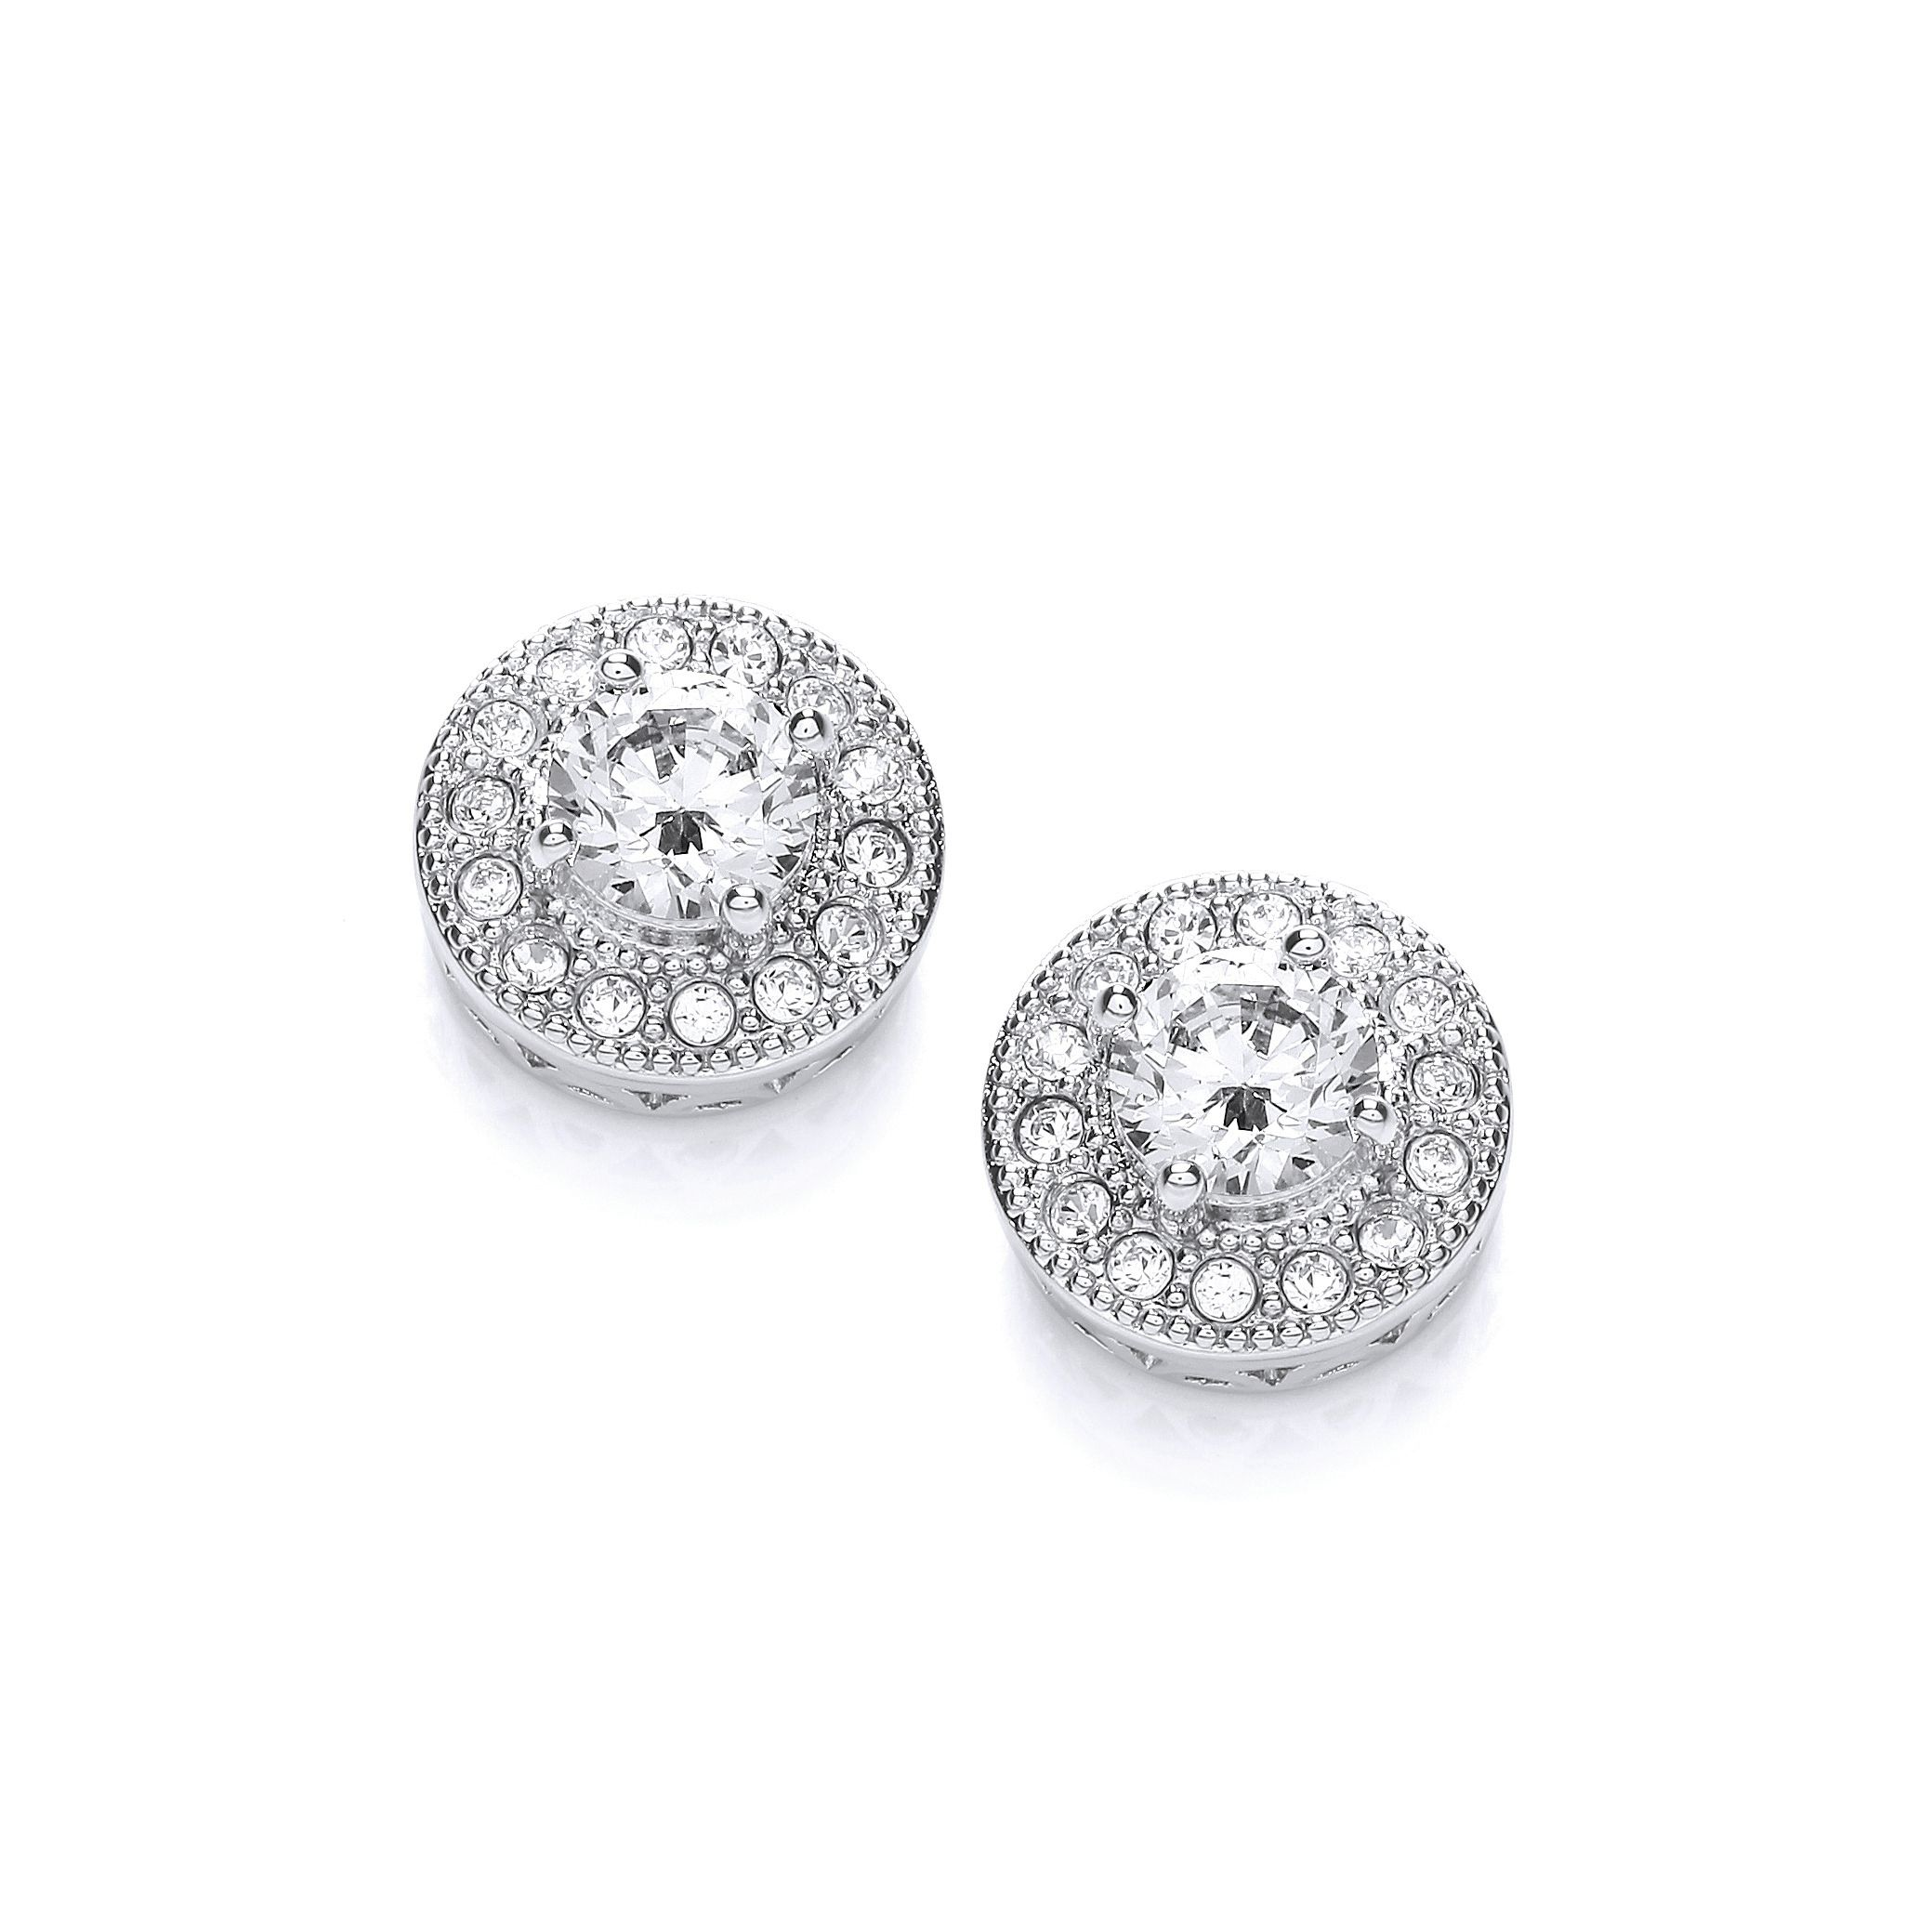 Rhodium plate vintage button earrings